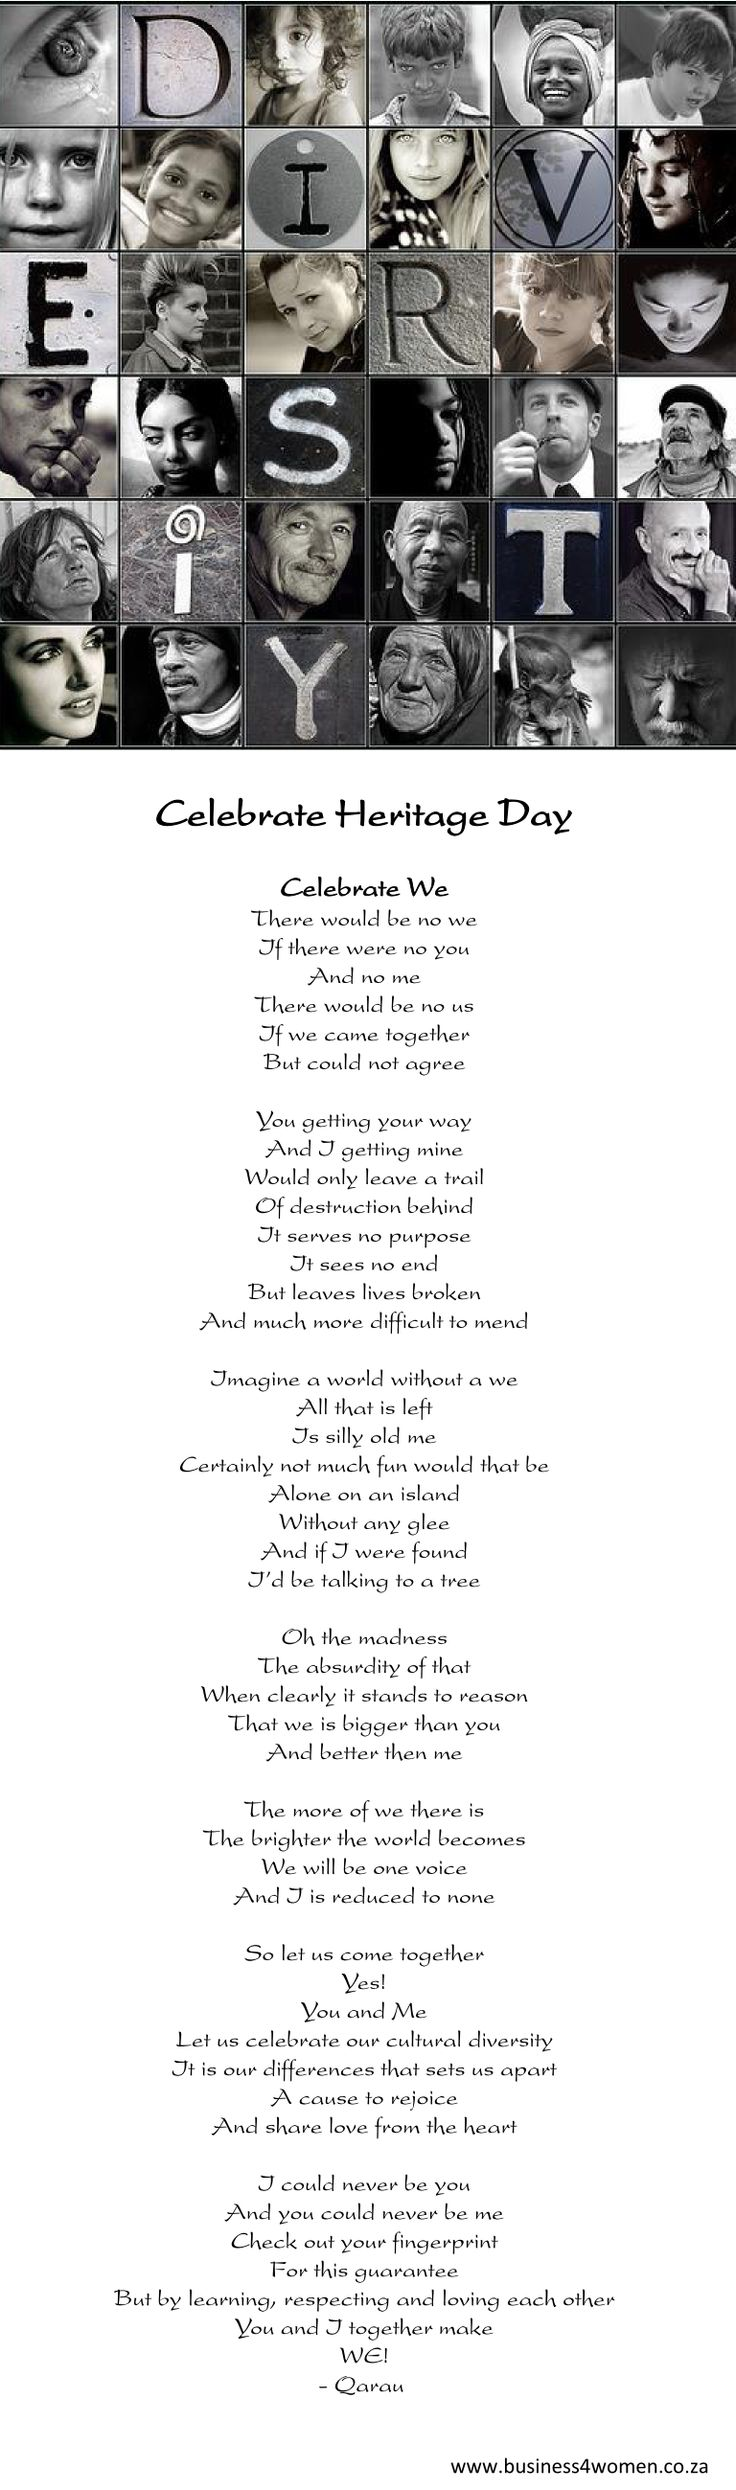 We wish you a colourful Heritage Day! South Africans across the spectrum are encouraged to celebrate their culture and the diversity of their beliefs and traditions, in the wider context of a nation that belongs to all its people.  Please share this beautiful poem!